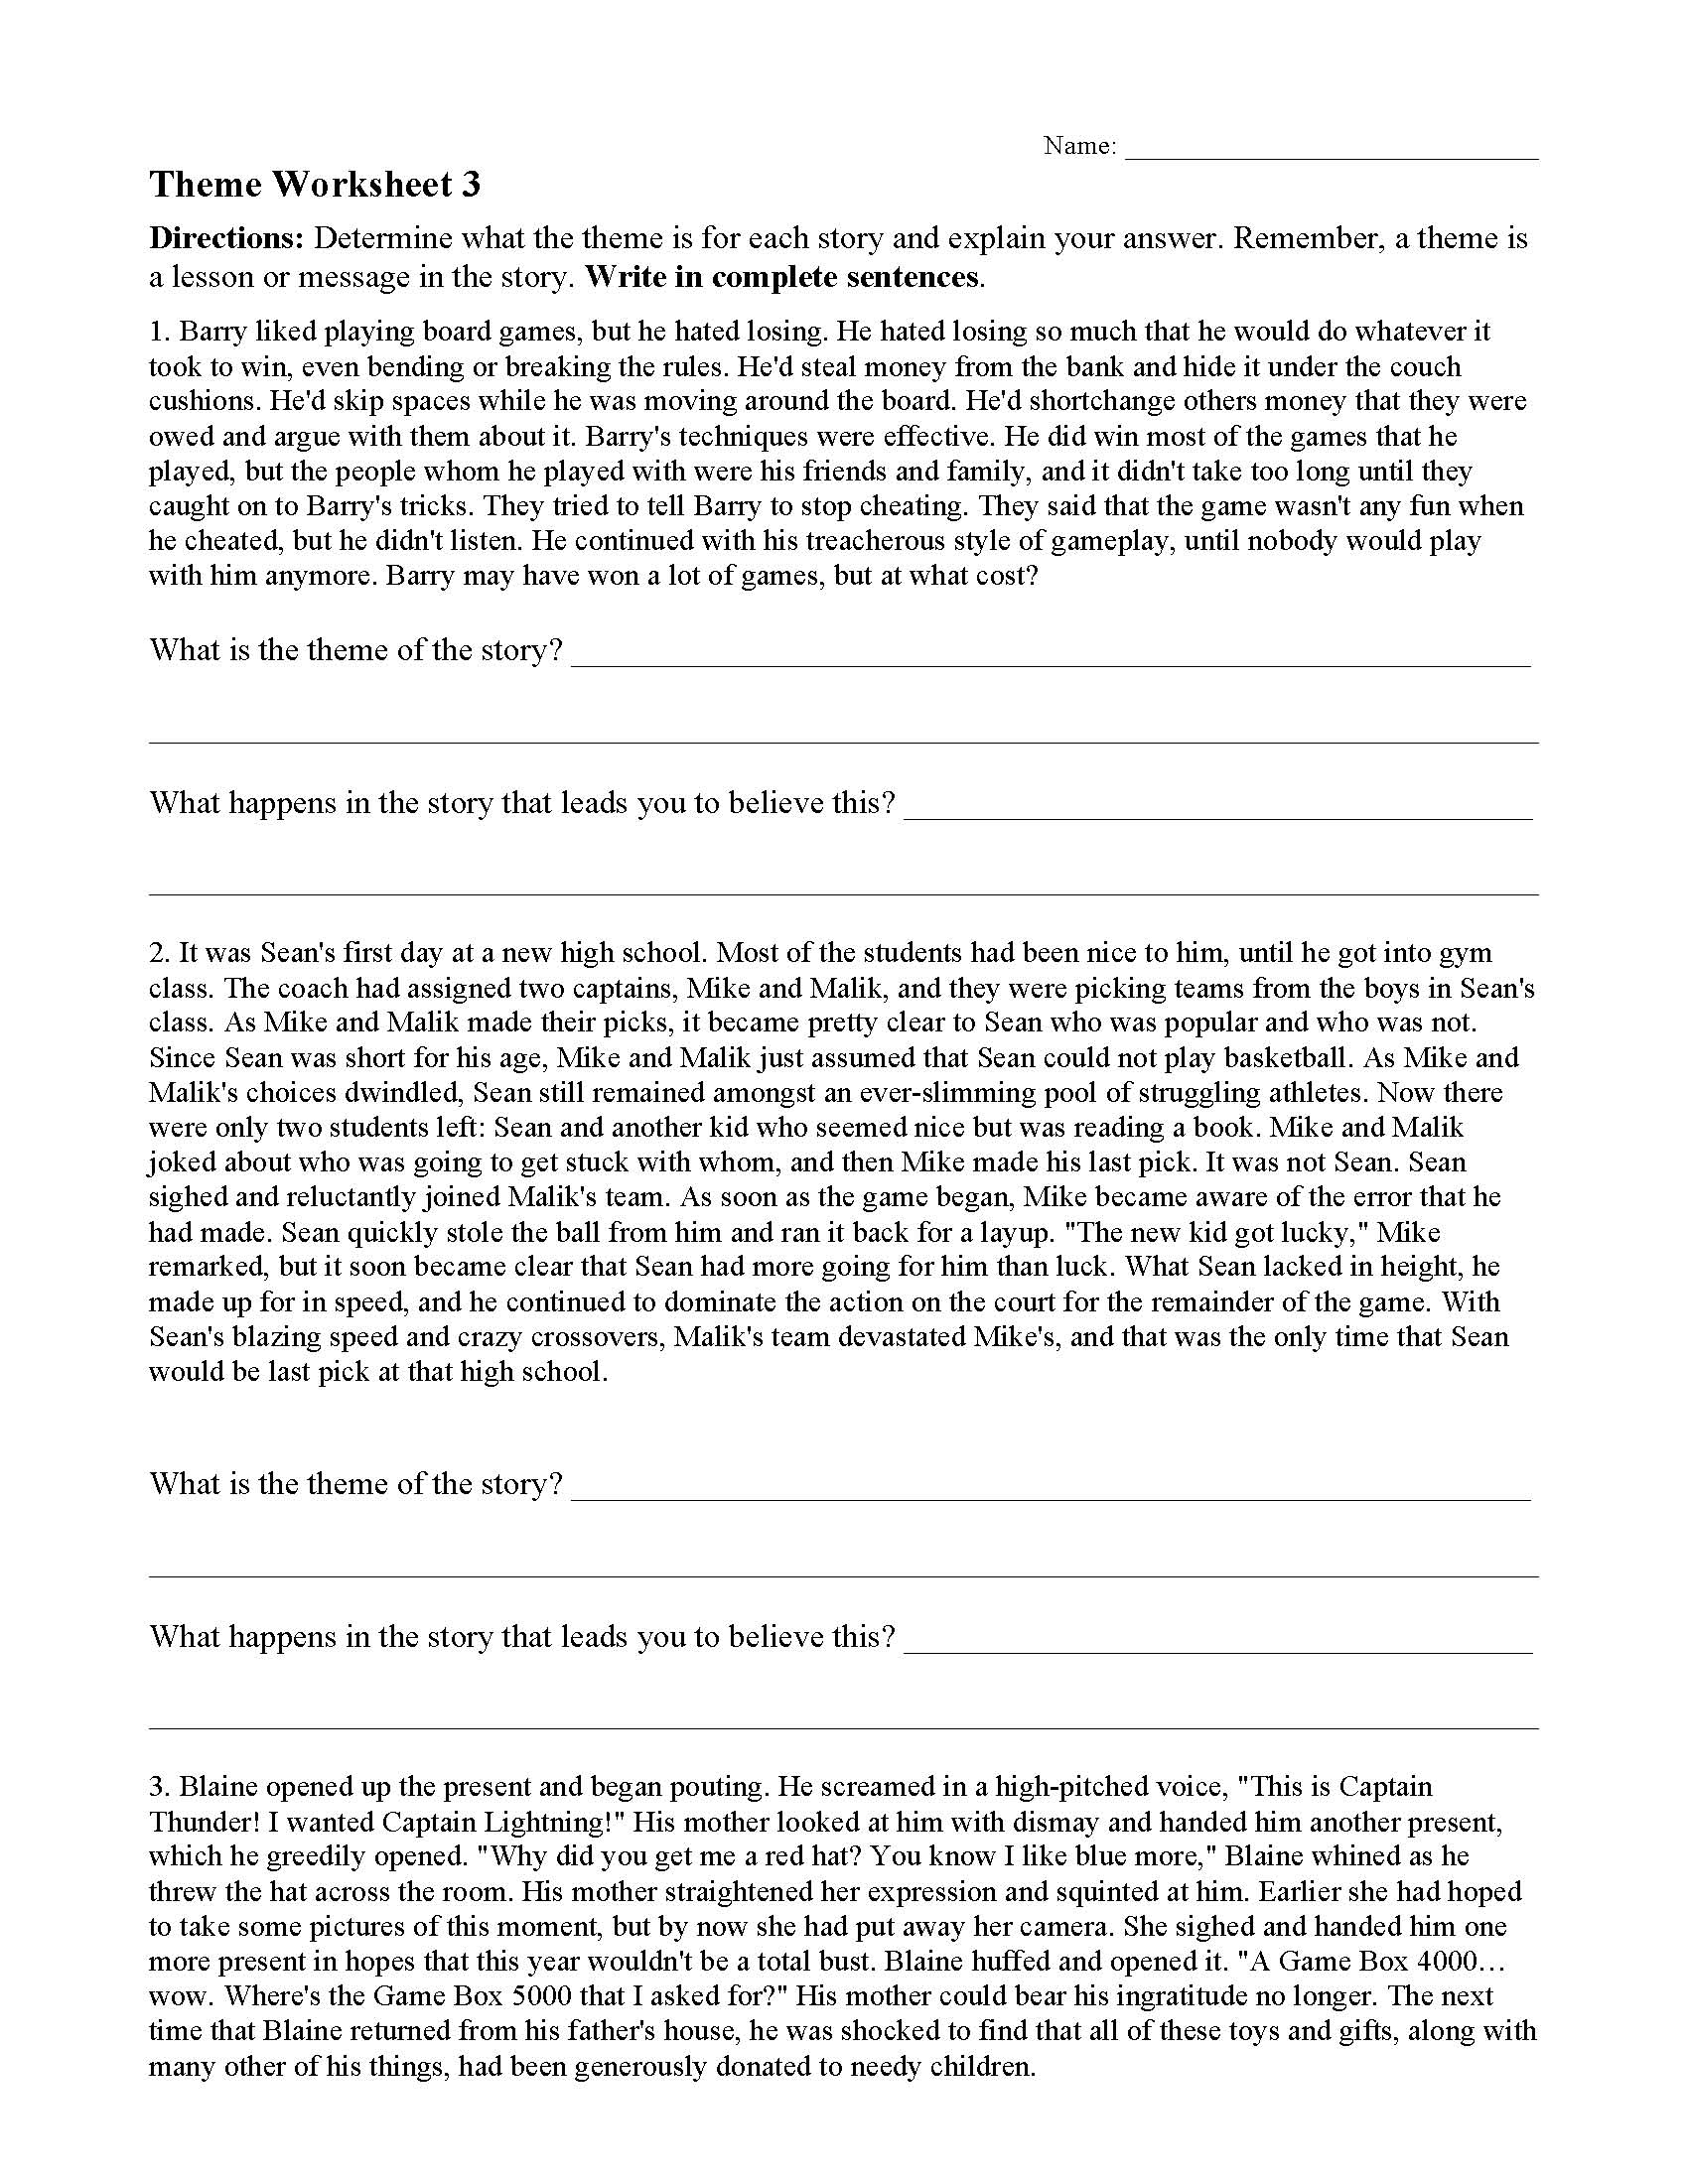 Theme Or Author S Message Worksheets Ereading Worksheets Print, save, edit, and practice online. ereading worksheets